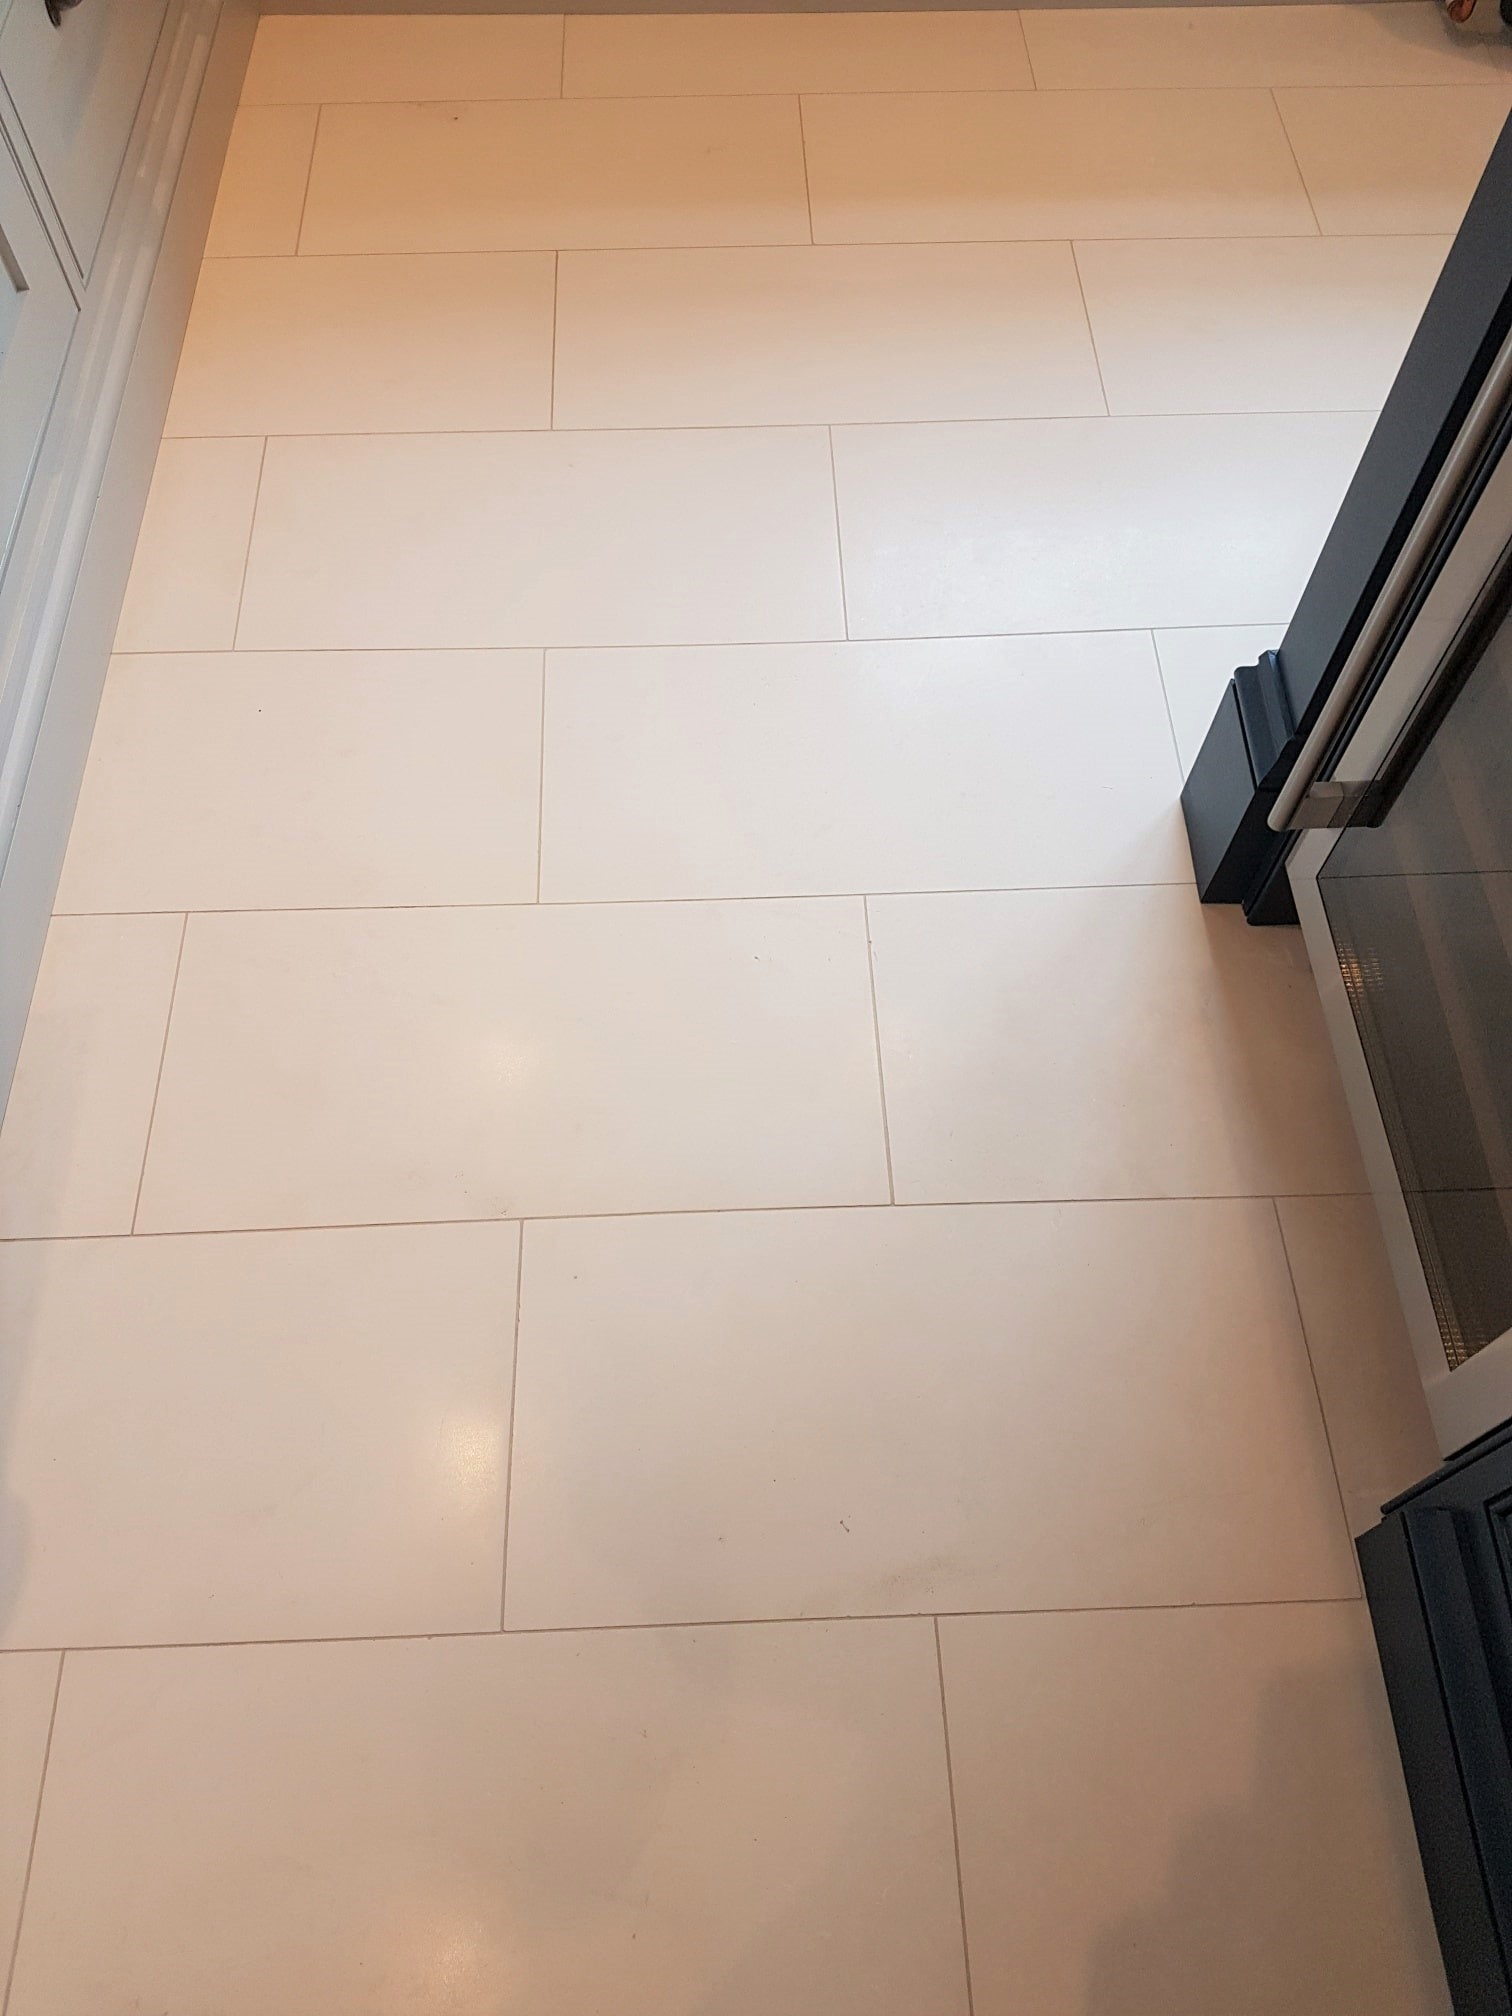 Renovating A Limestone Tiled Kitchen Floor In Shepperton Middle